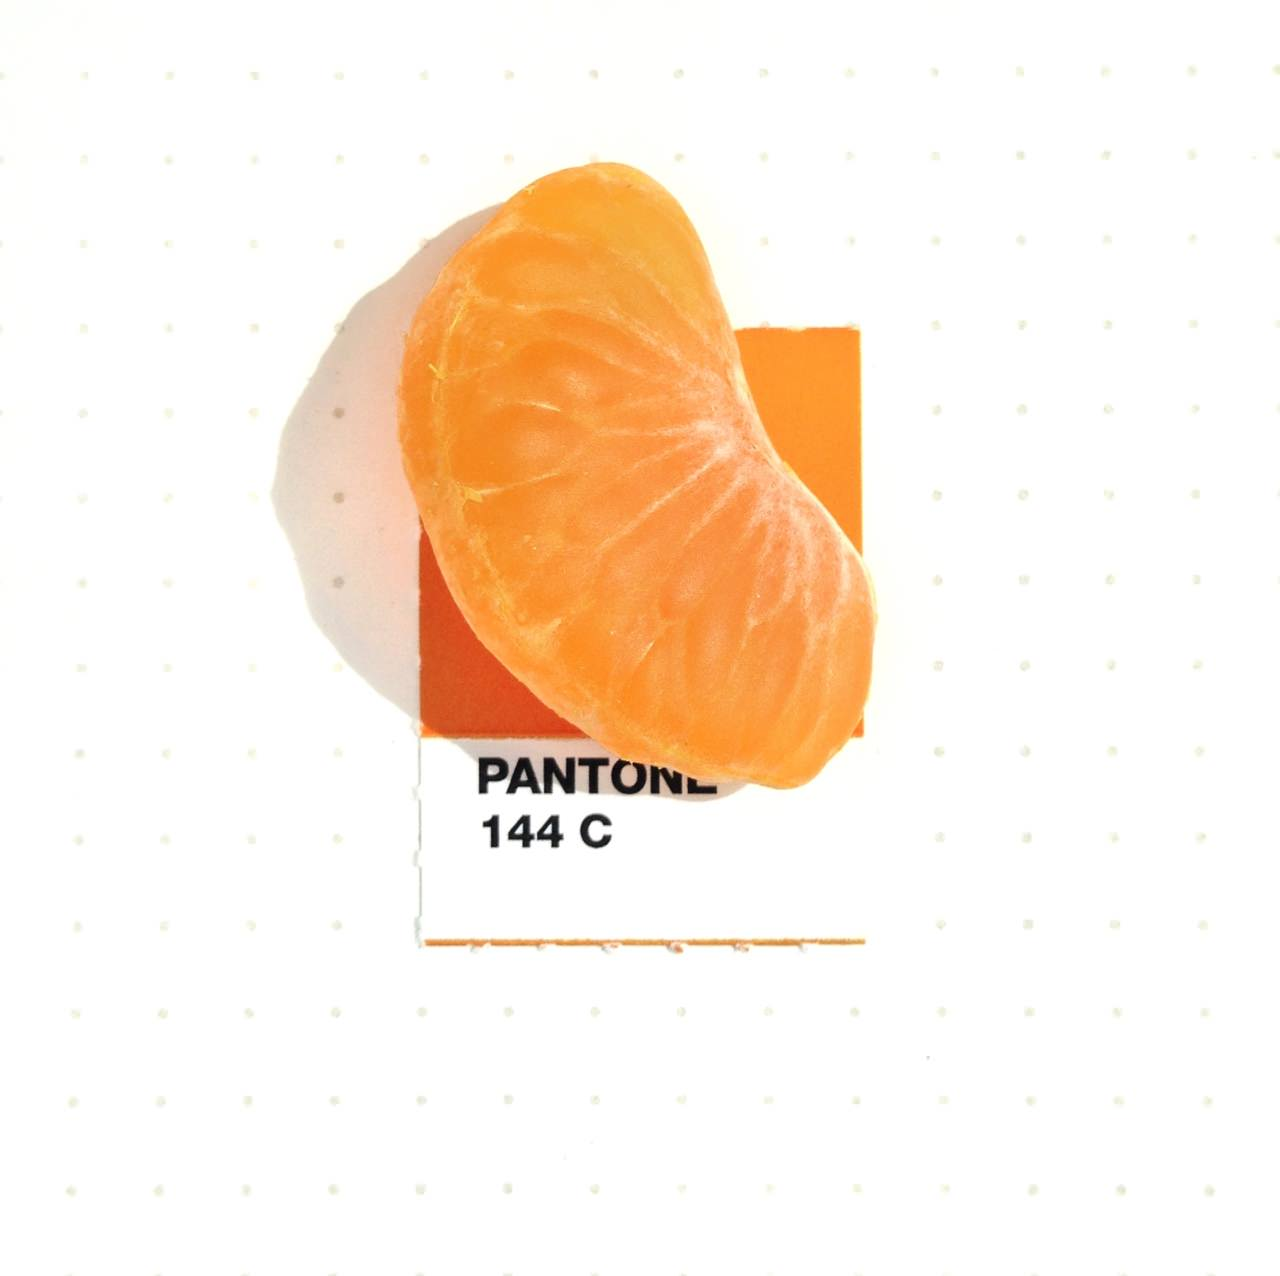 bridging-life-and-design-in-15-pantone-color-matches-06